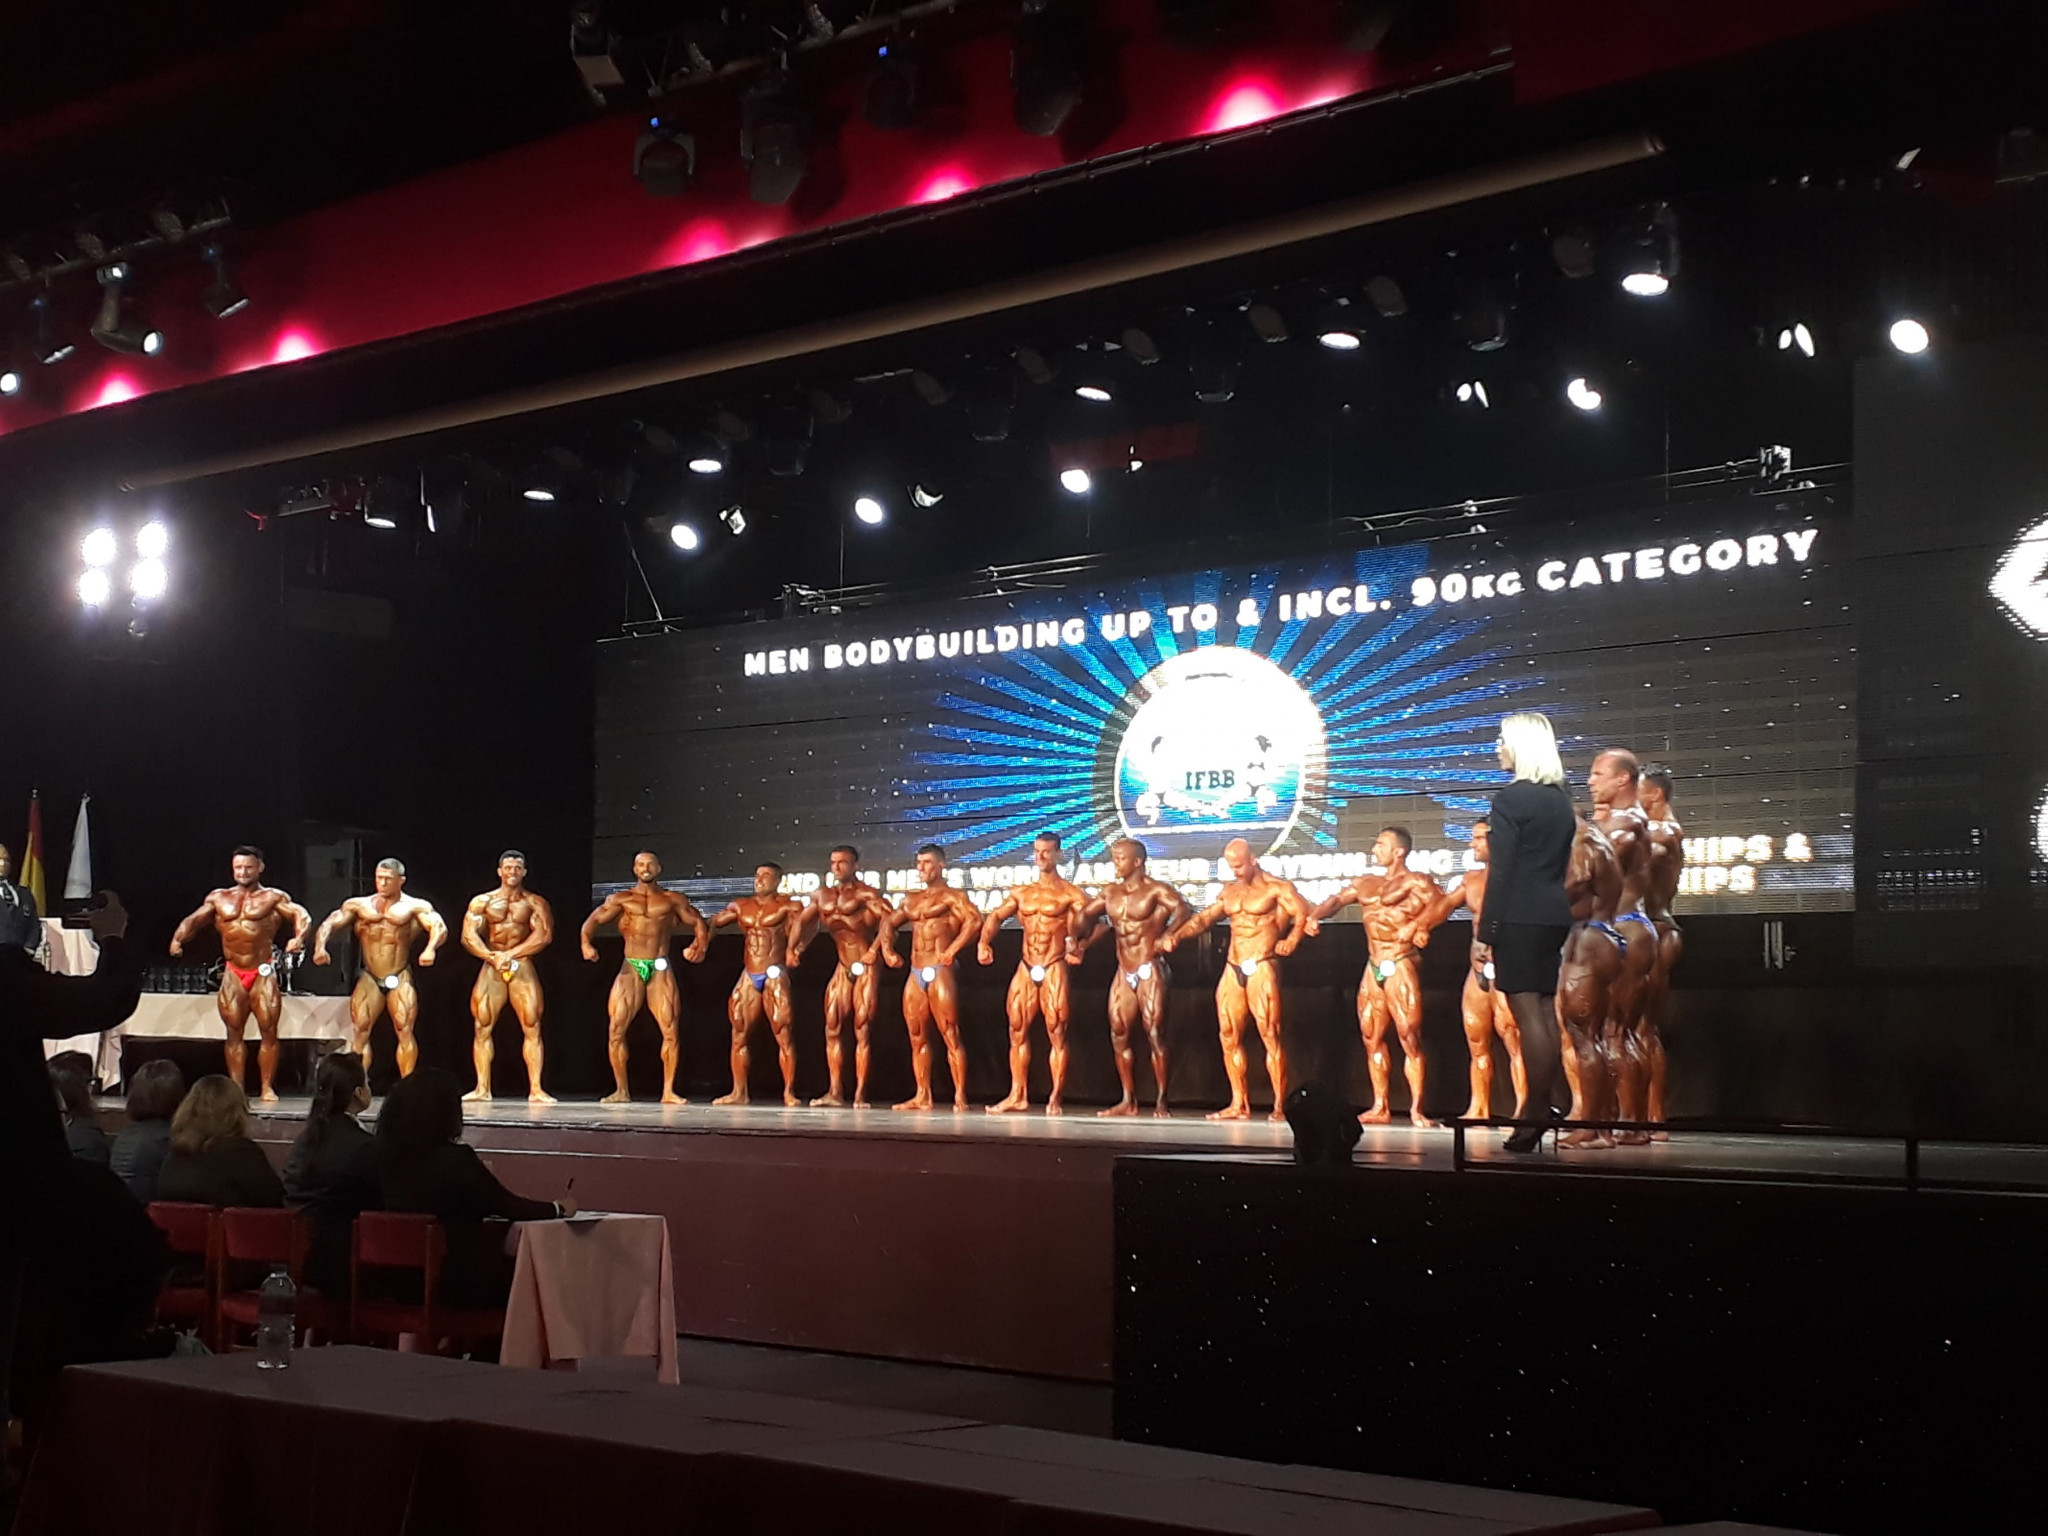 IFBB World Bodybuilding Championships: Day two of competition